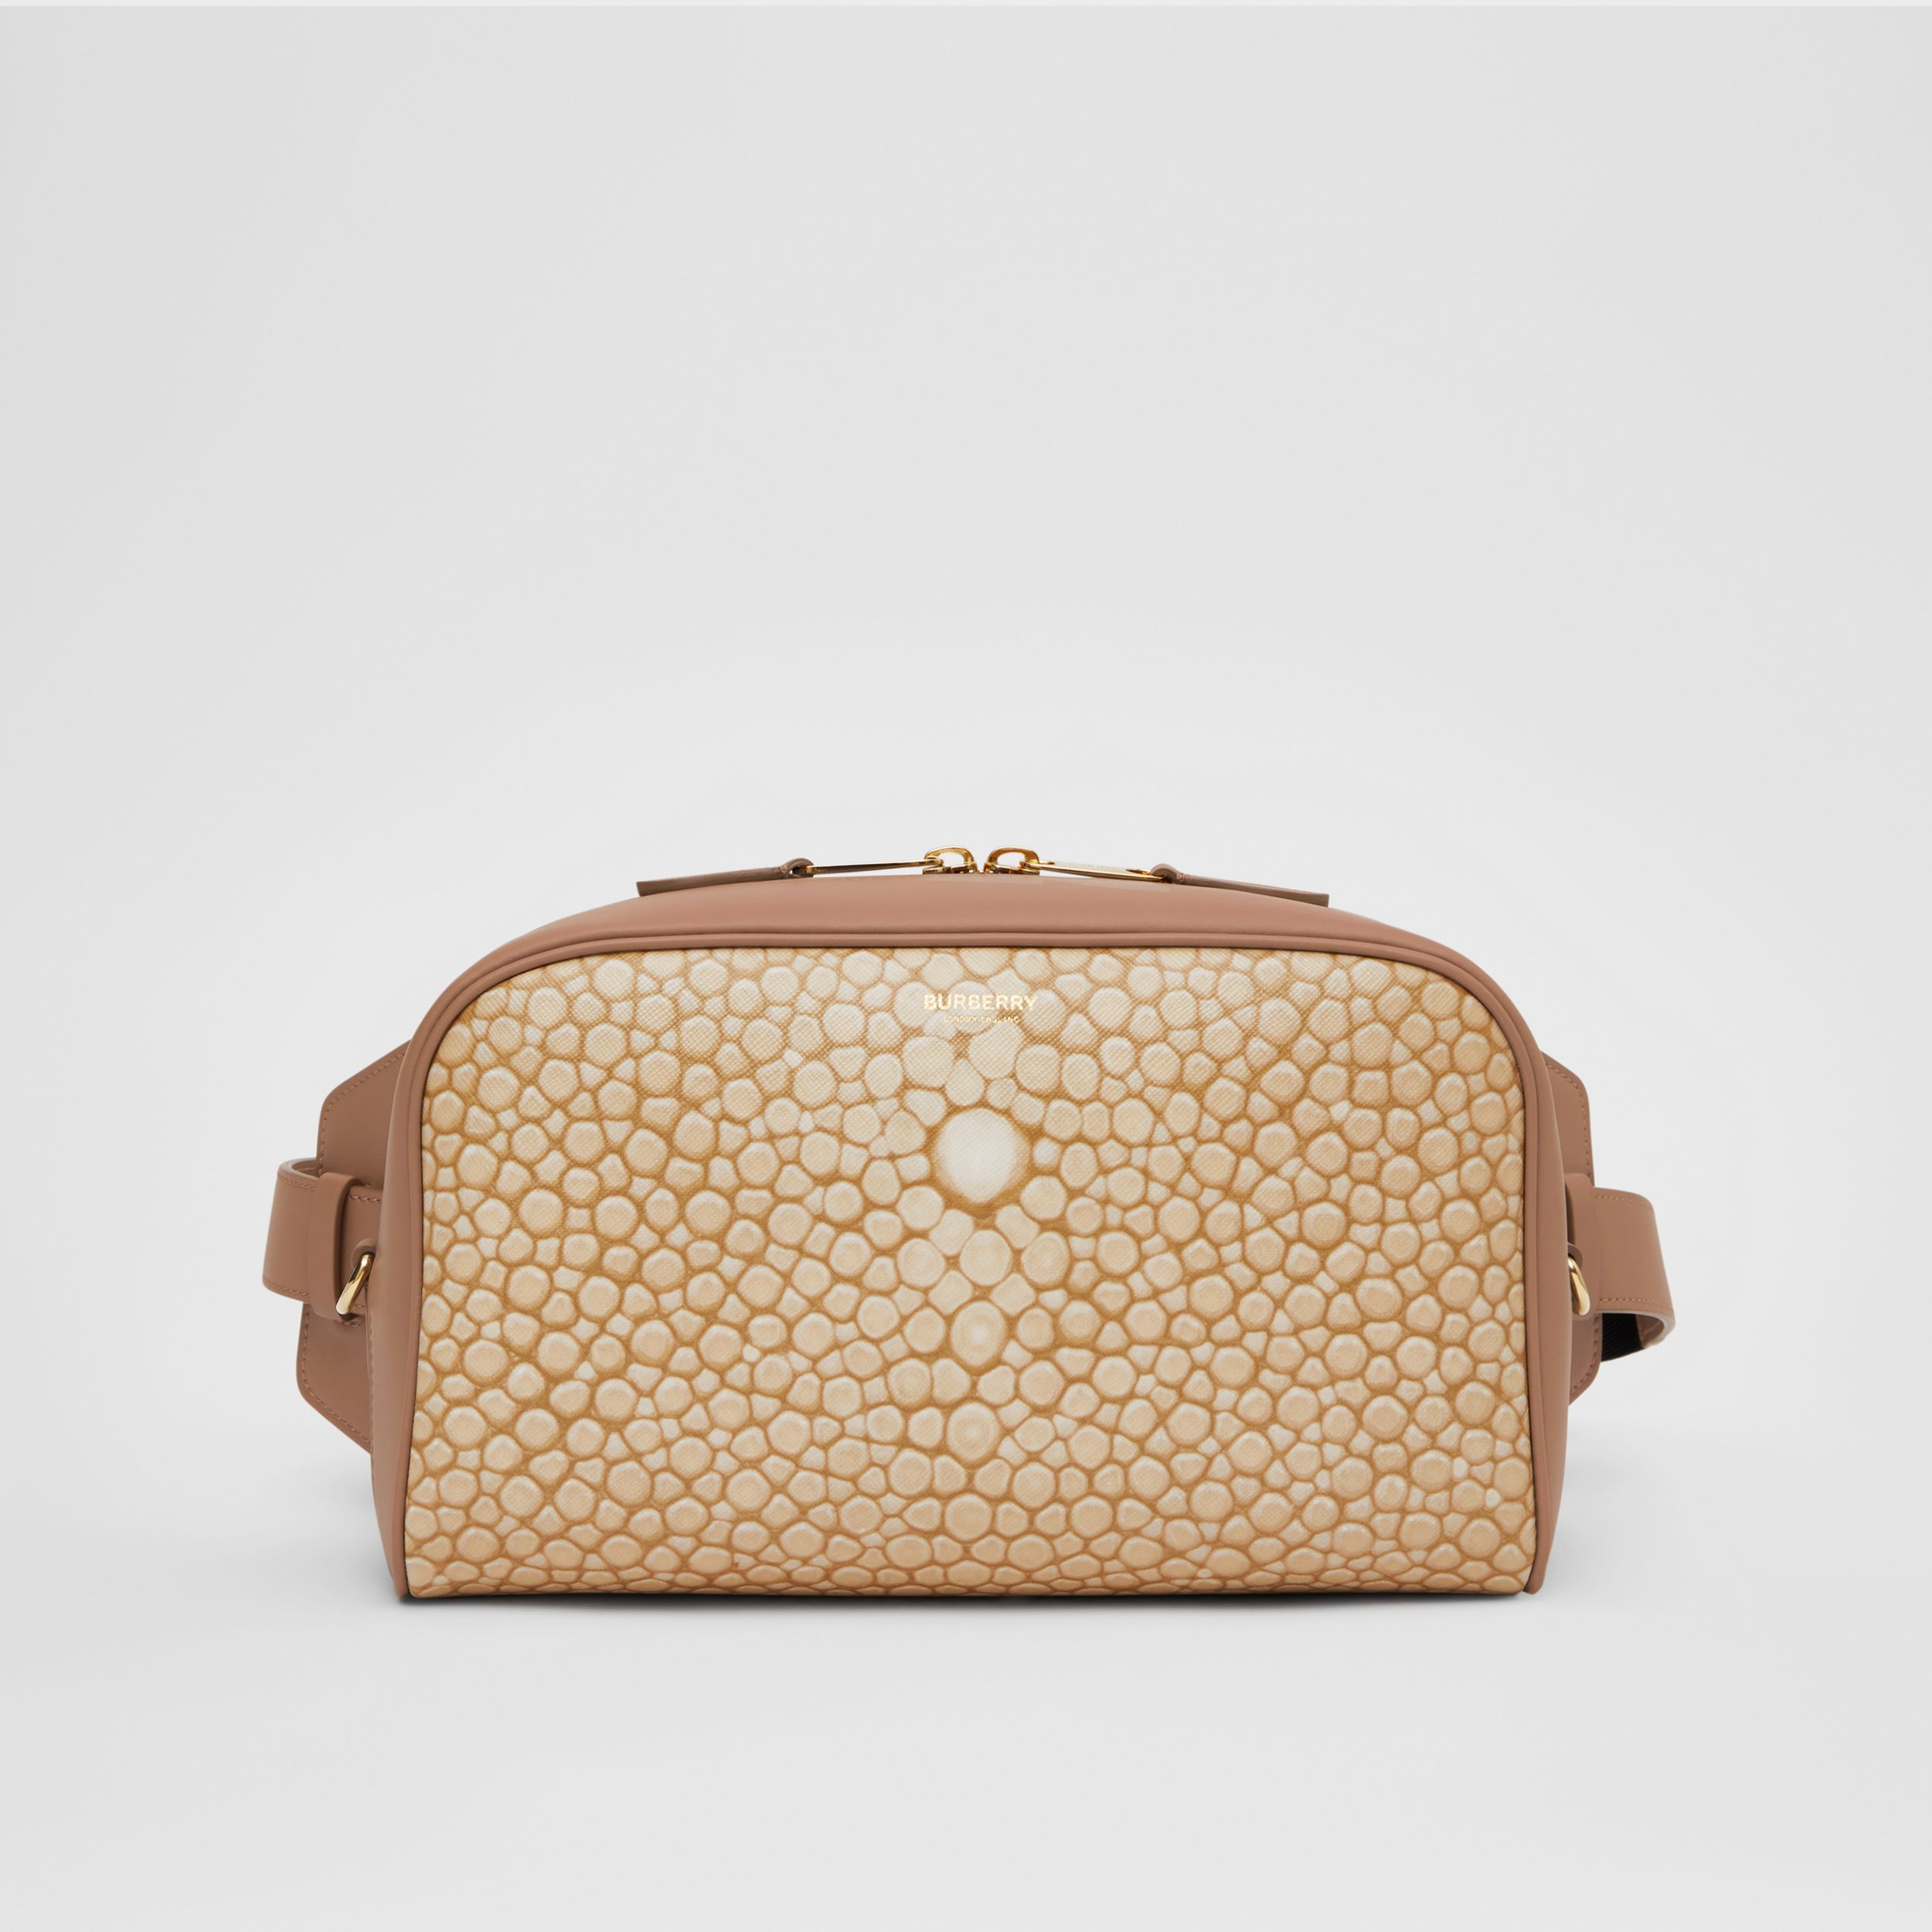 Fish-scale Print and Leather Cube Bum Bag in Light Sand - Women | Burberry - 1